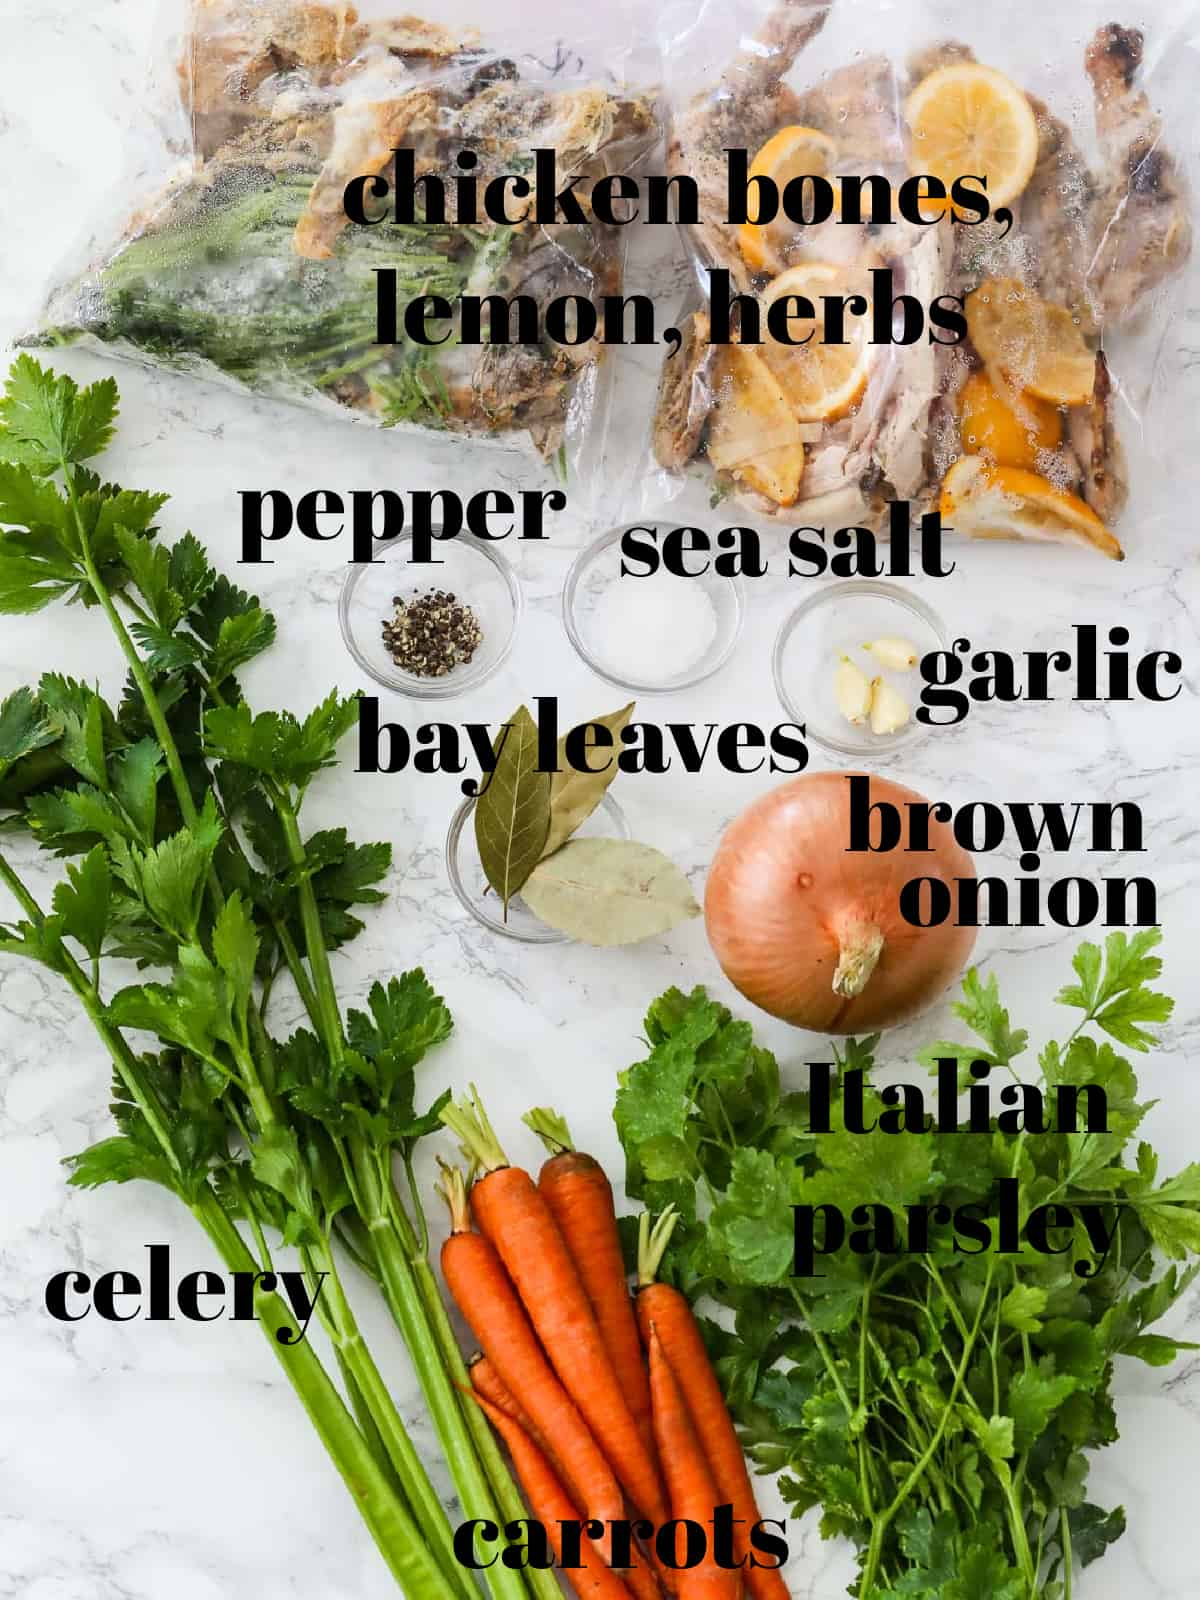 A table filled with ingredients to make a chicken stock recipe all labeled.